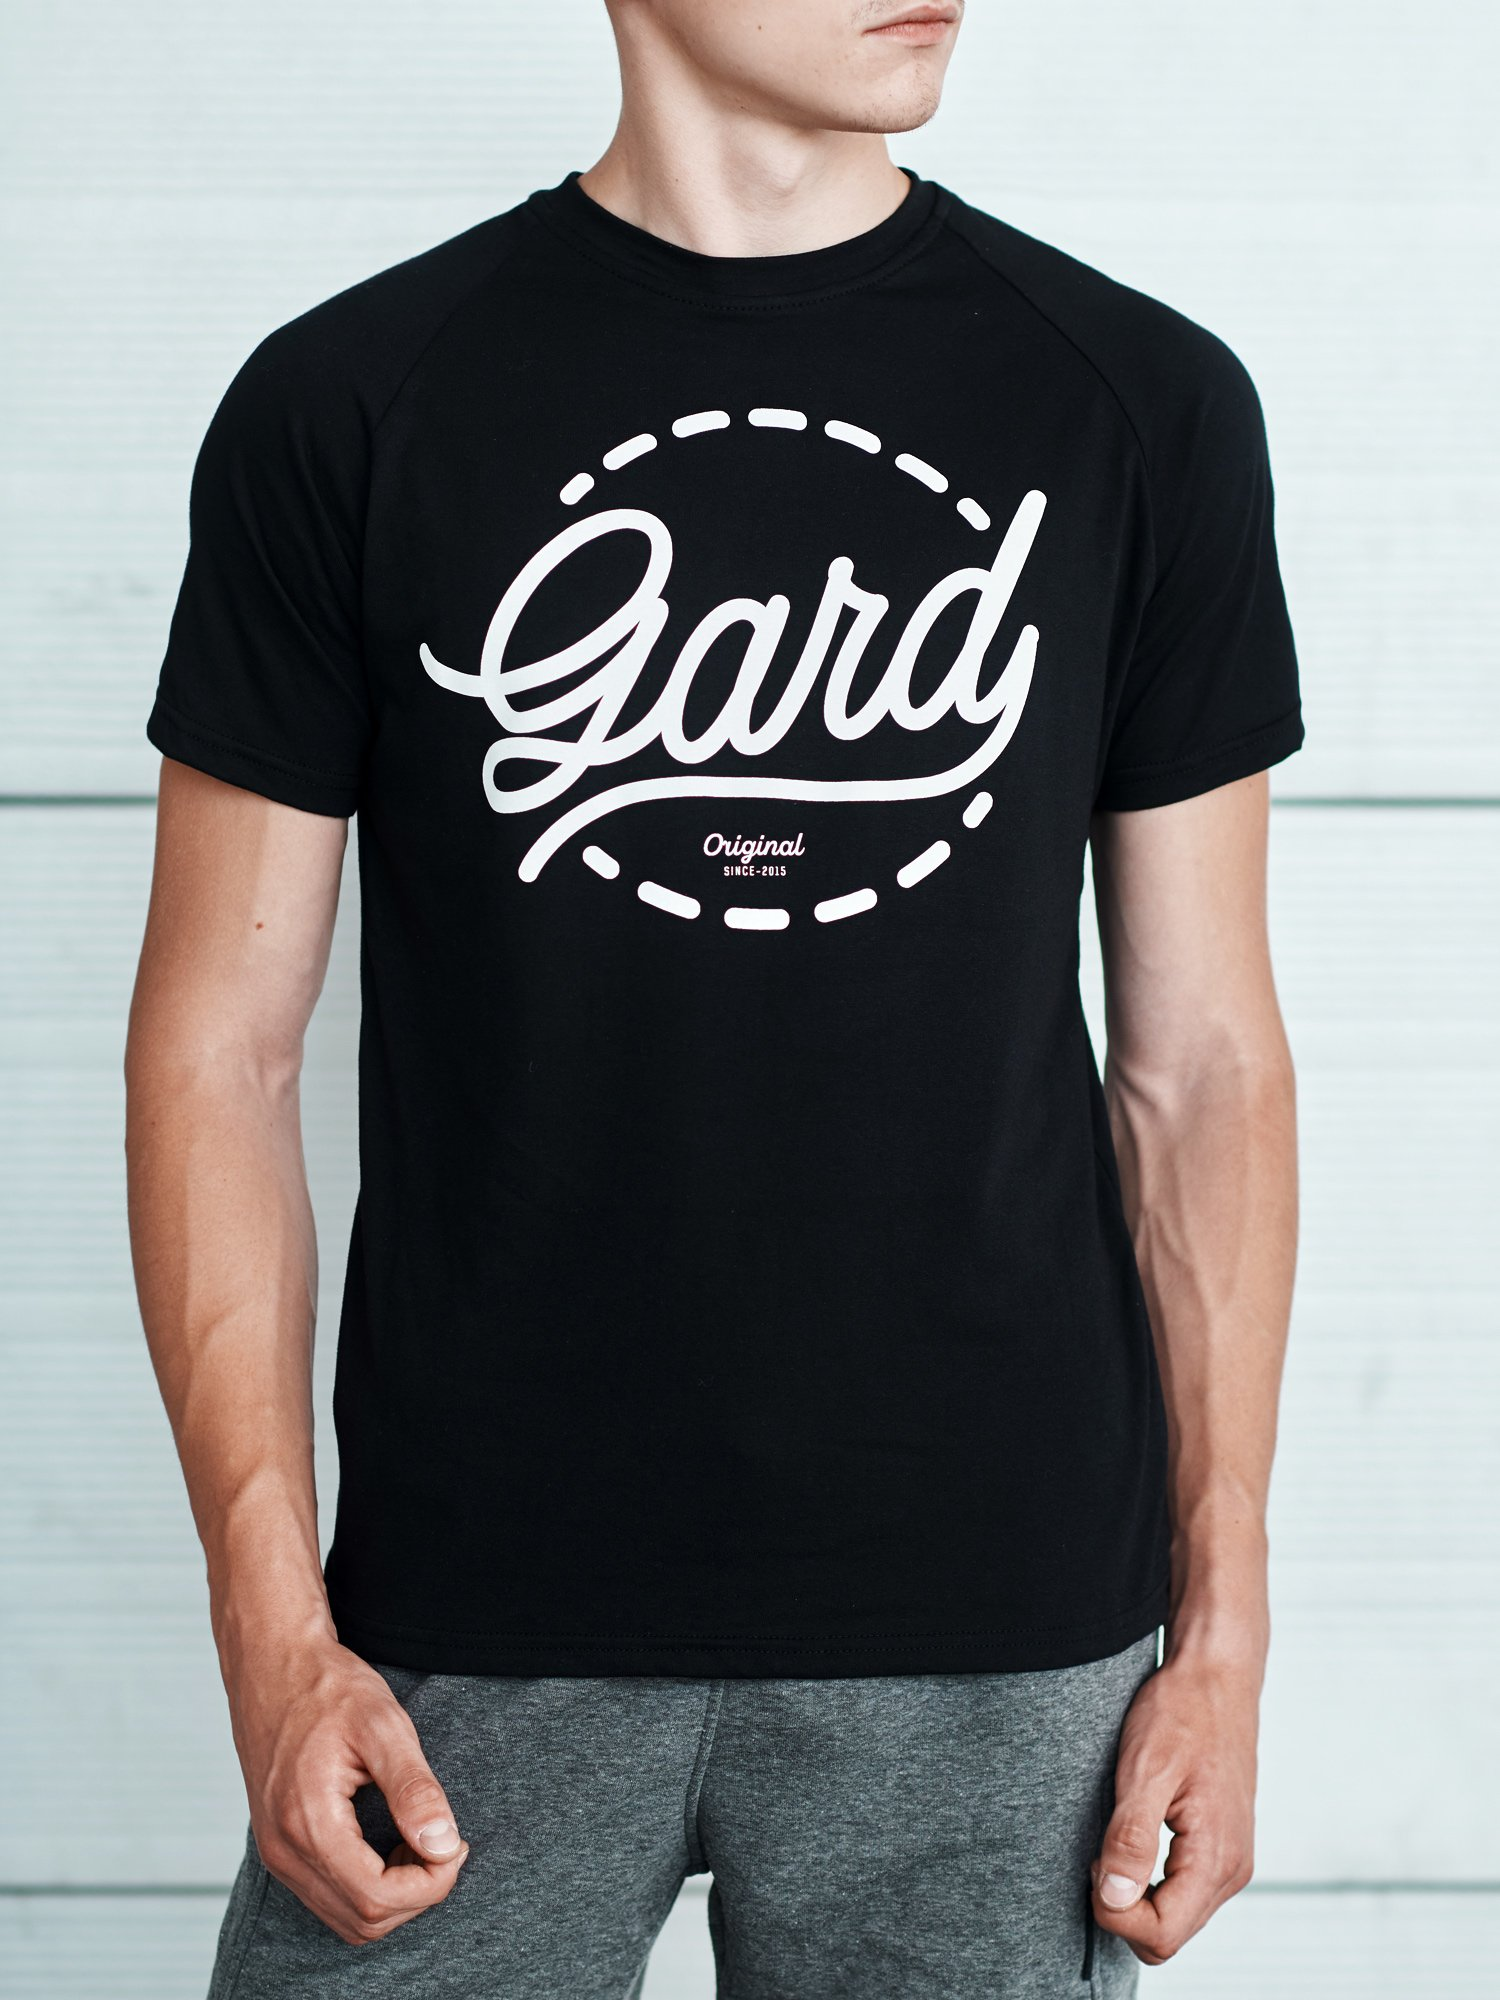 Футболка GARD ORIGINAL black 3/18